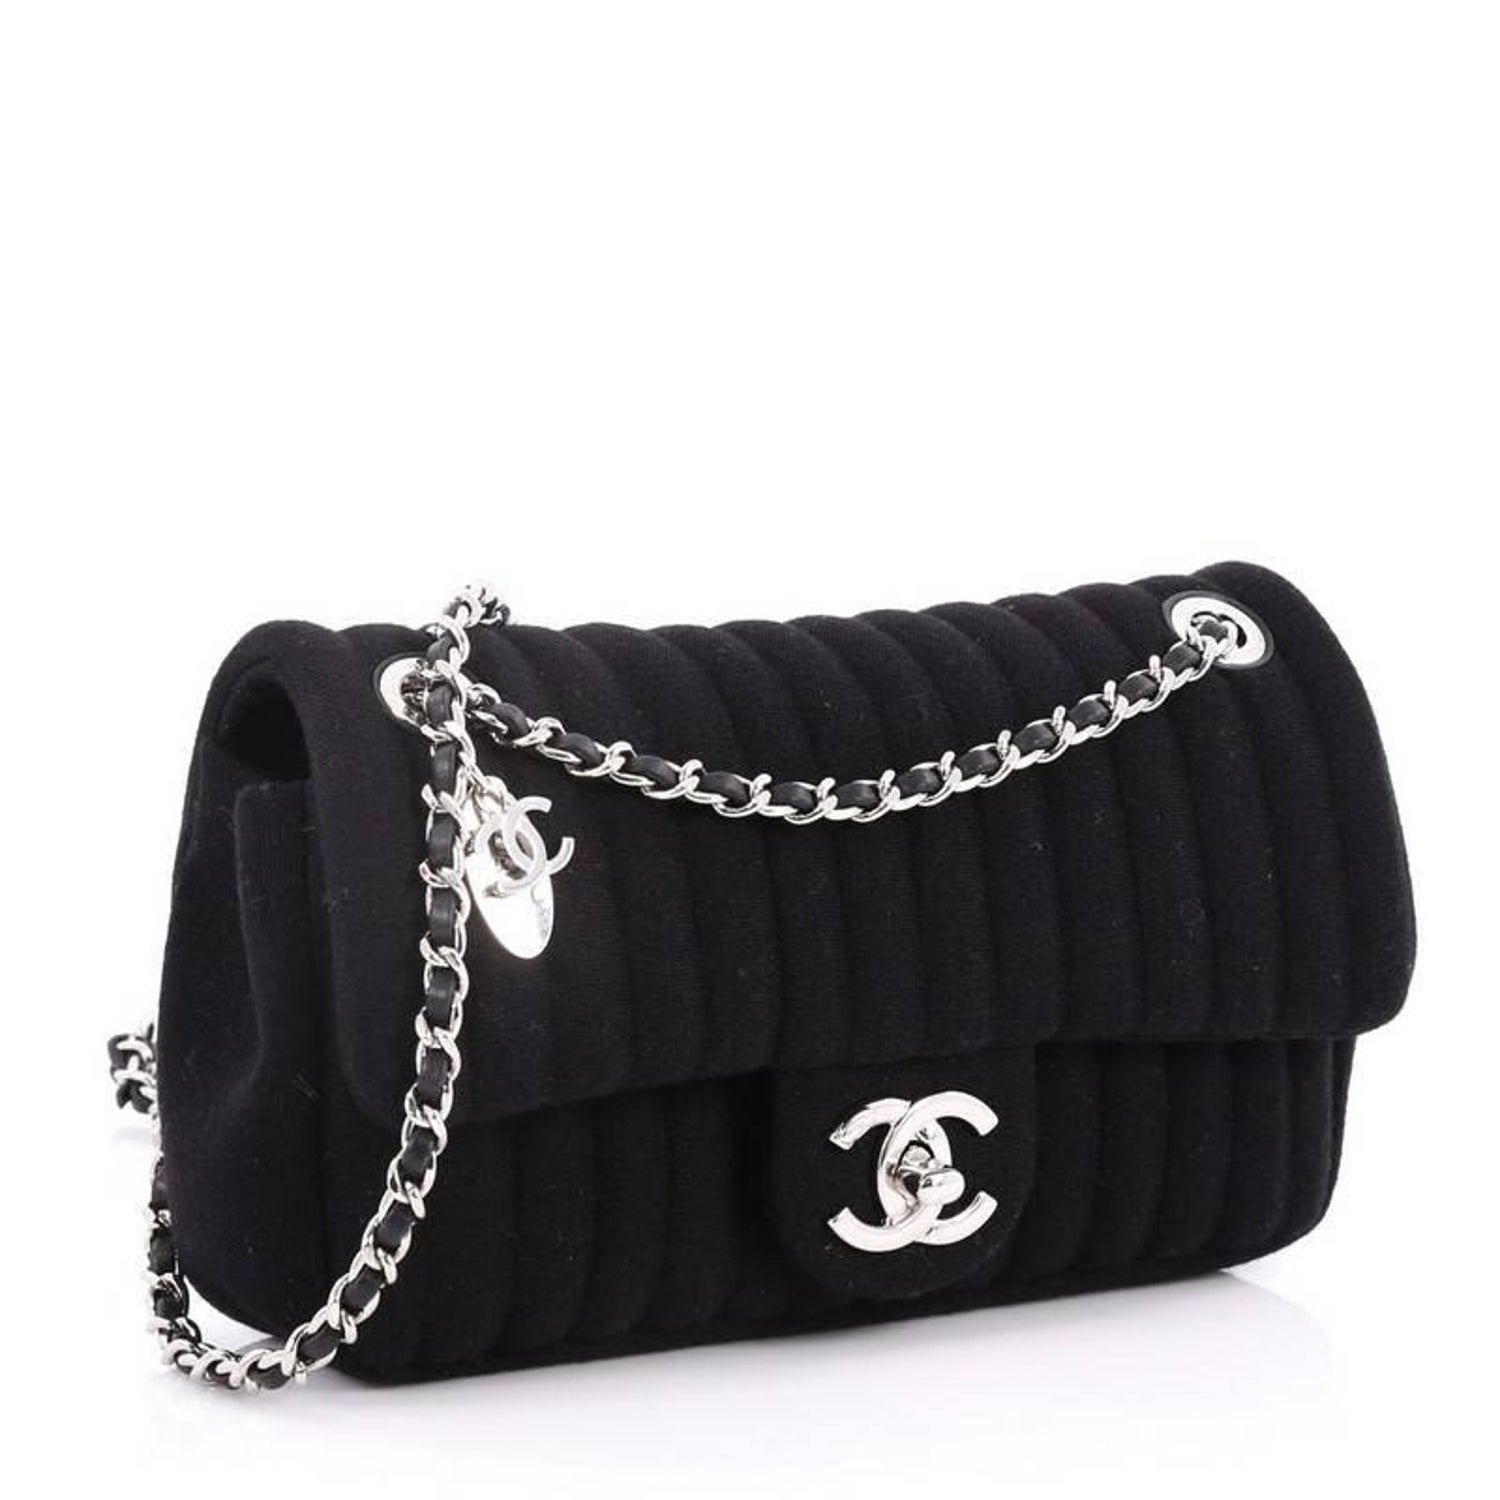 bd4904841d58 Chanel CC Charm Vertical Quilt Jersey Small Flap Bag at 1stdibs